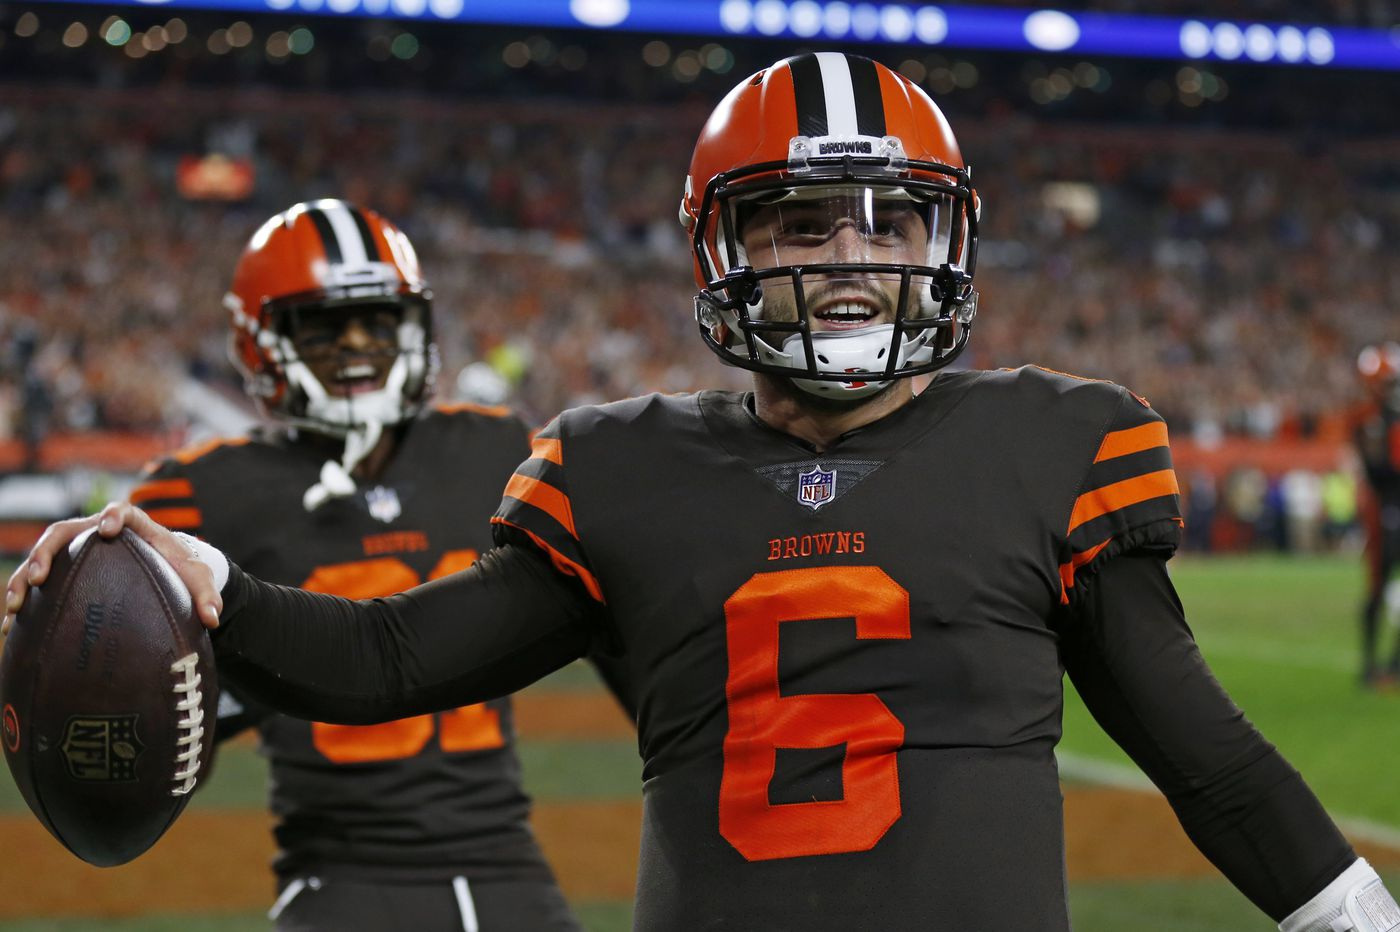 Video: Browns, Baker Mayfield do their best 'Philly Special' impression in 'Thursday Night Football' win